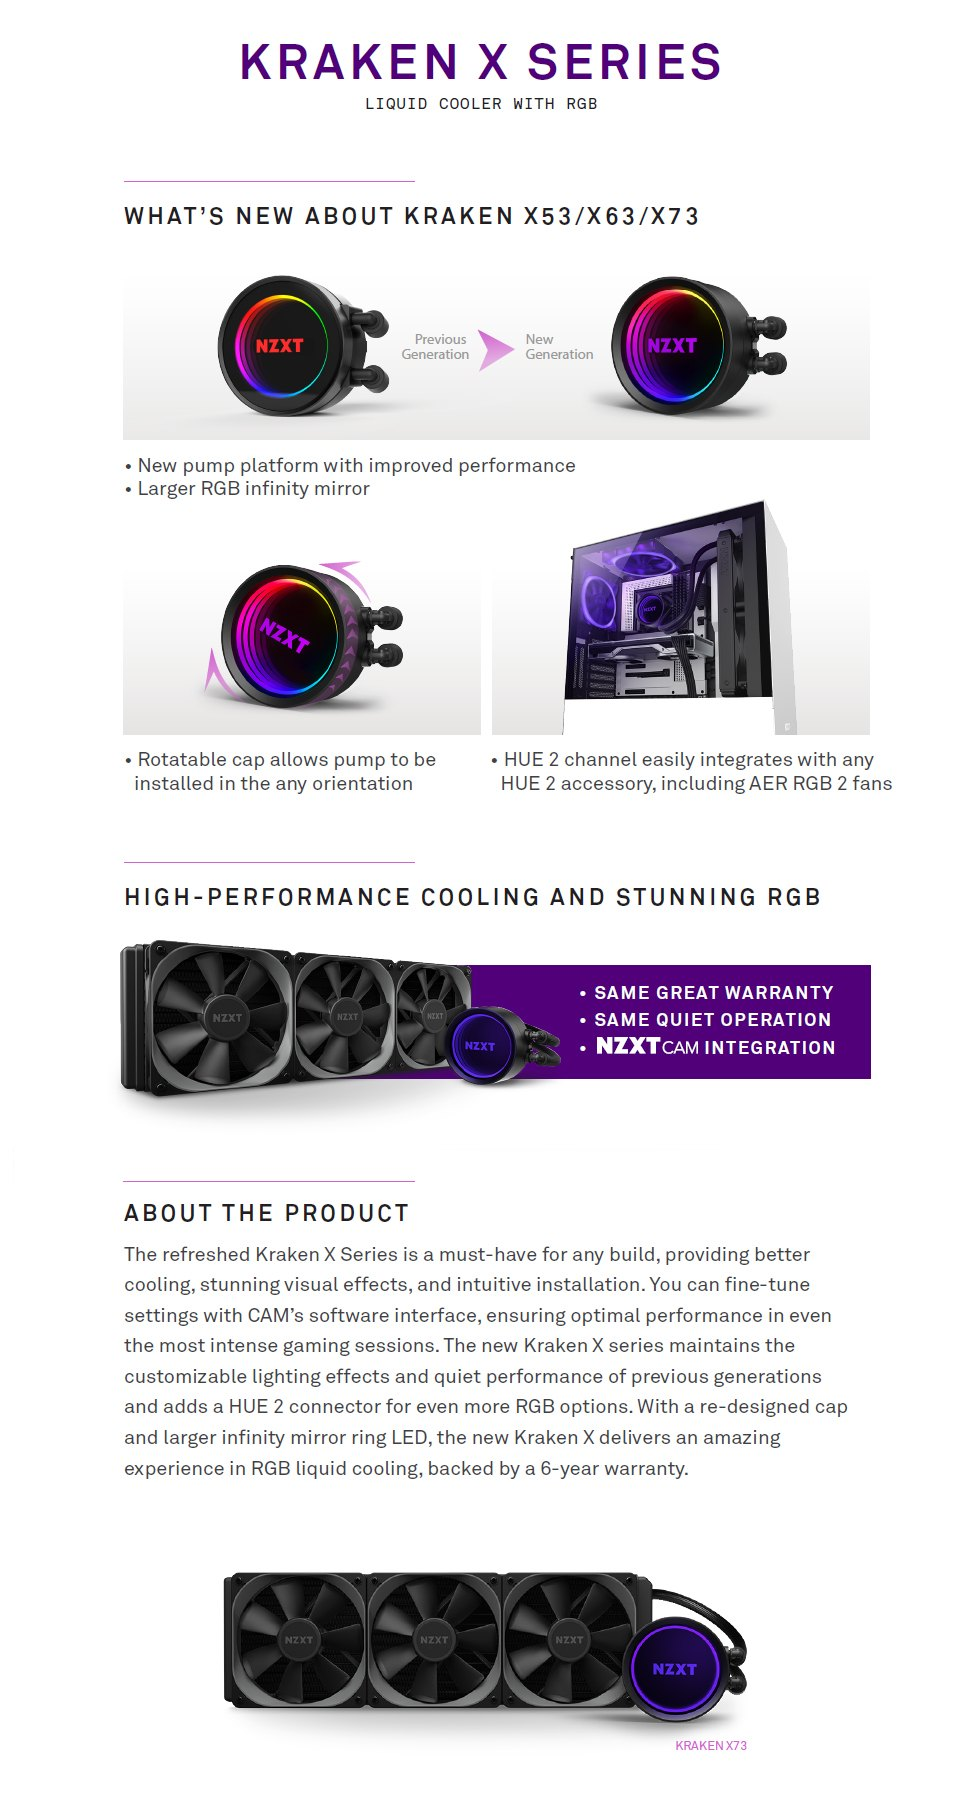 NZXT Kraken X73 360mm AIO Liquid CPU Cooler features